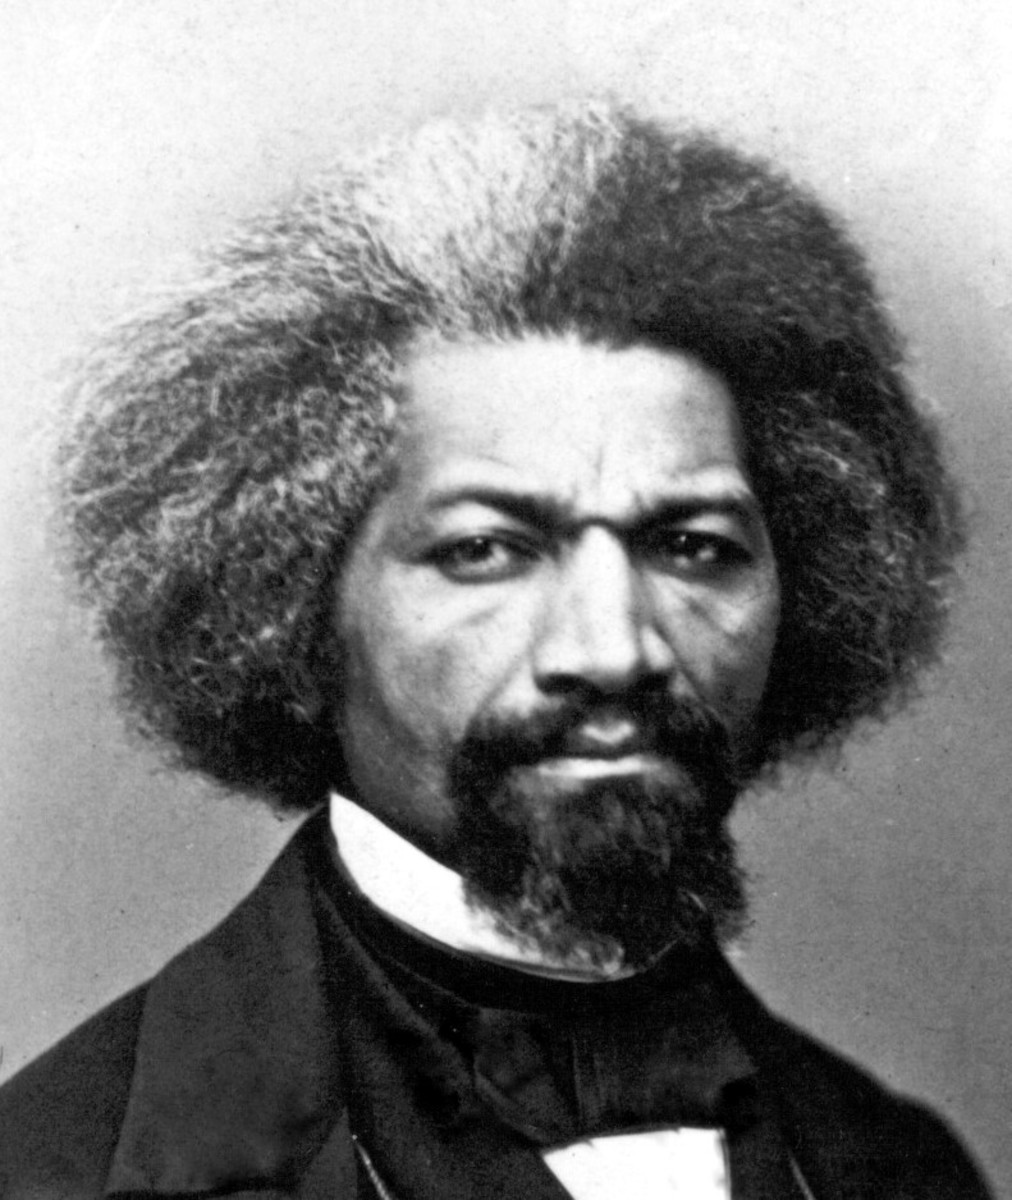 A photo of Frederick Douglass